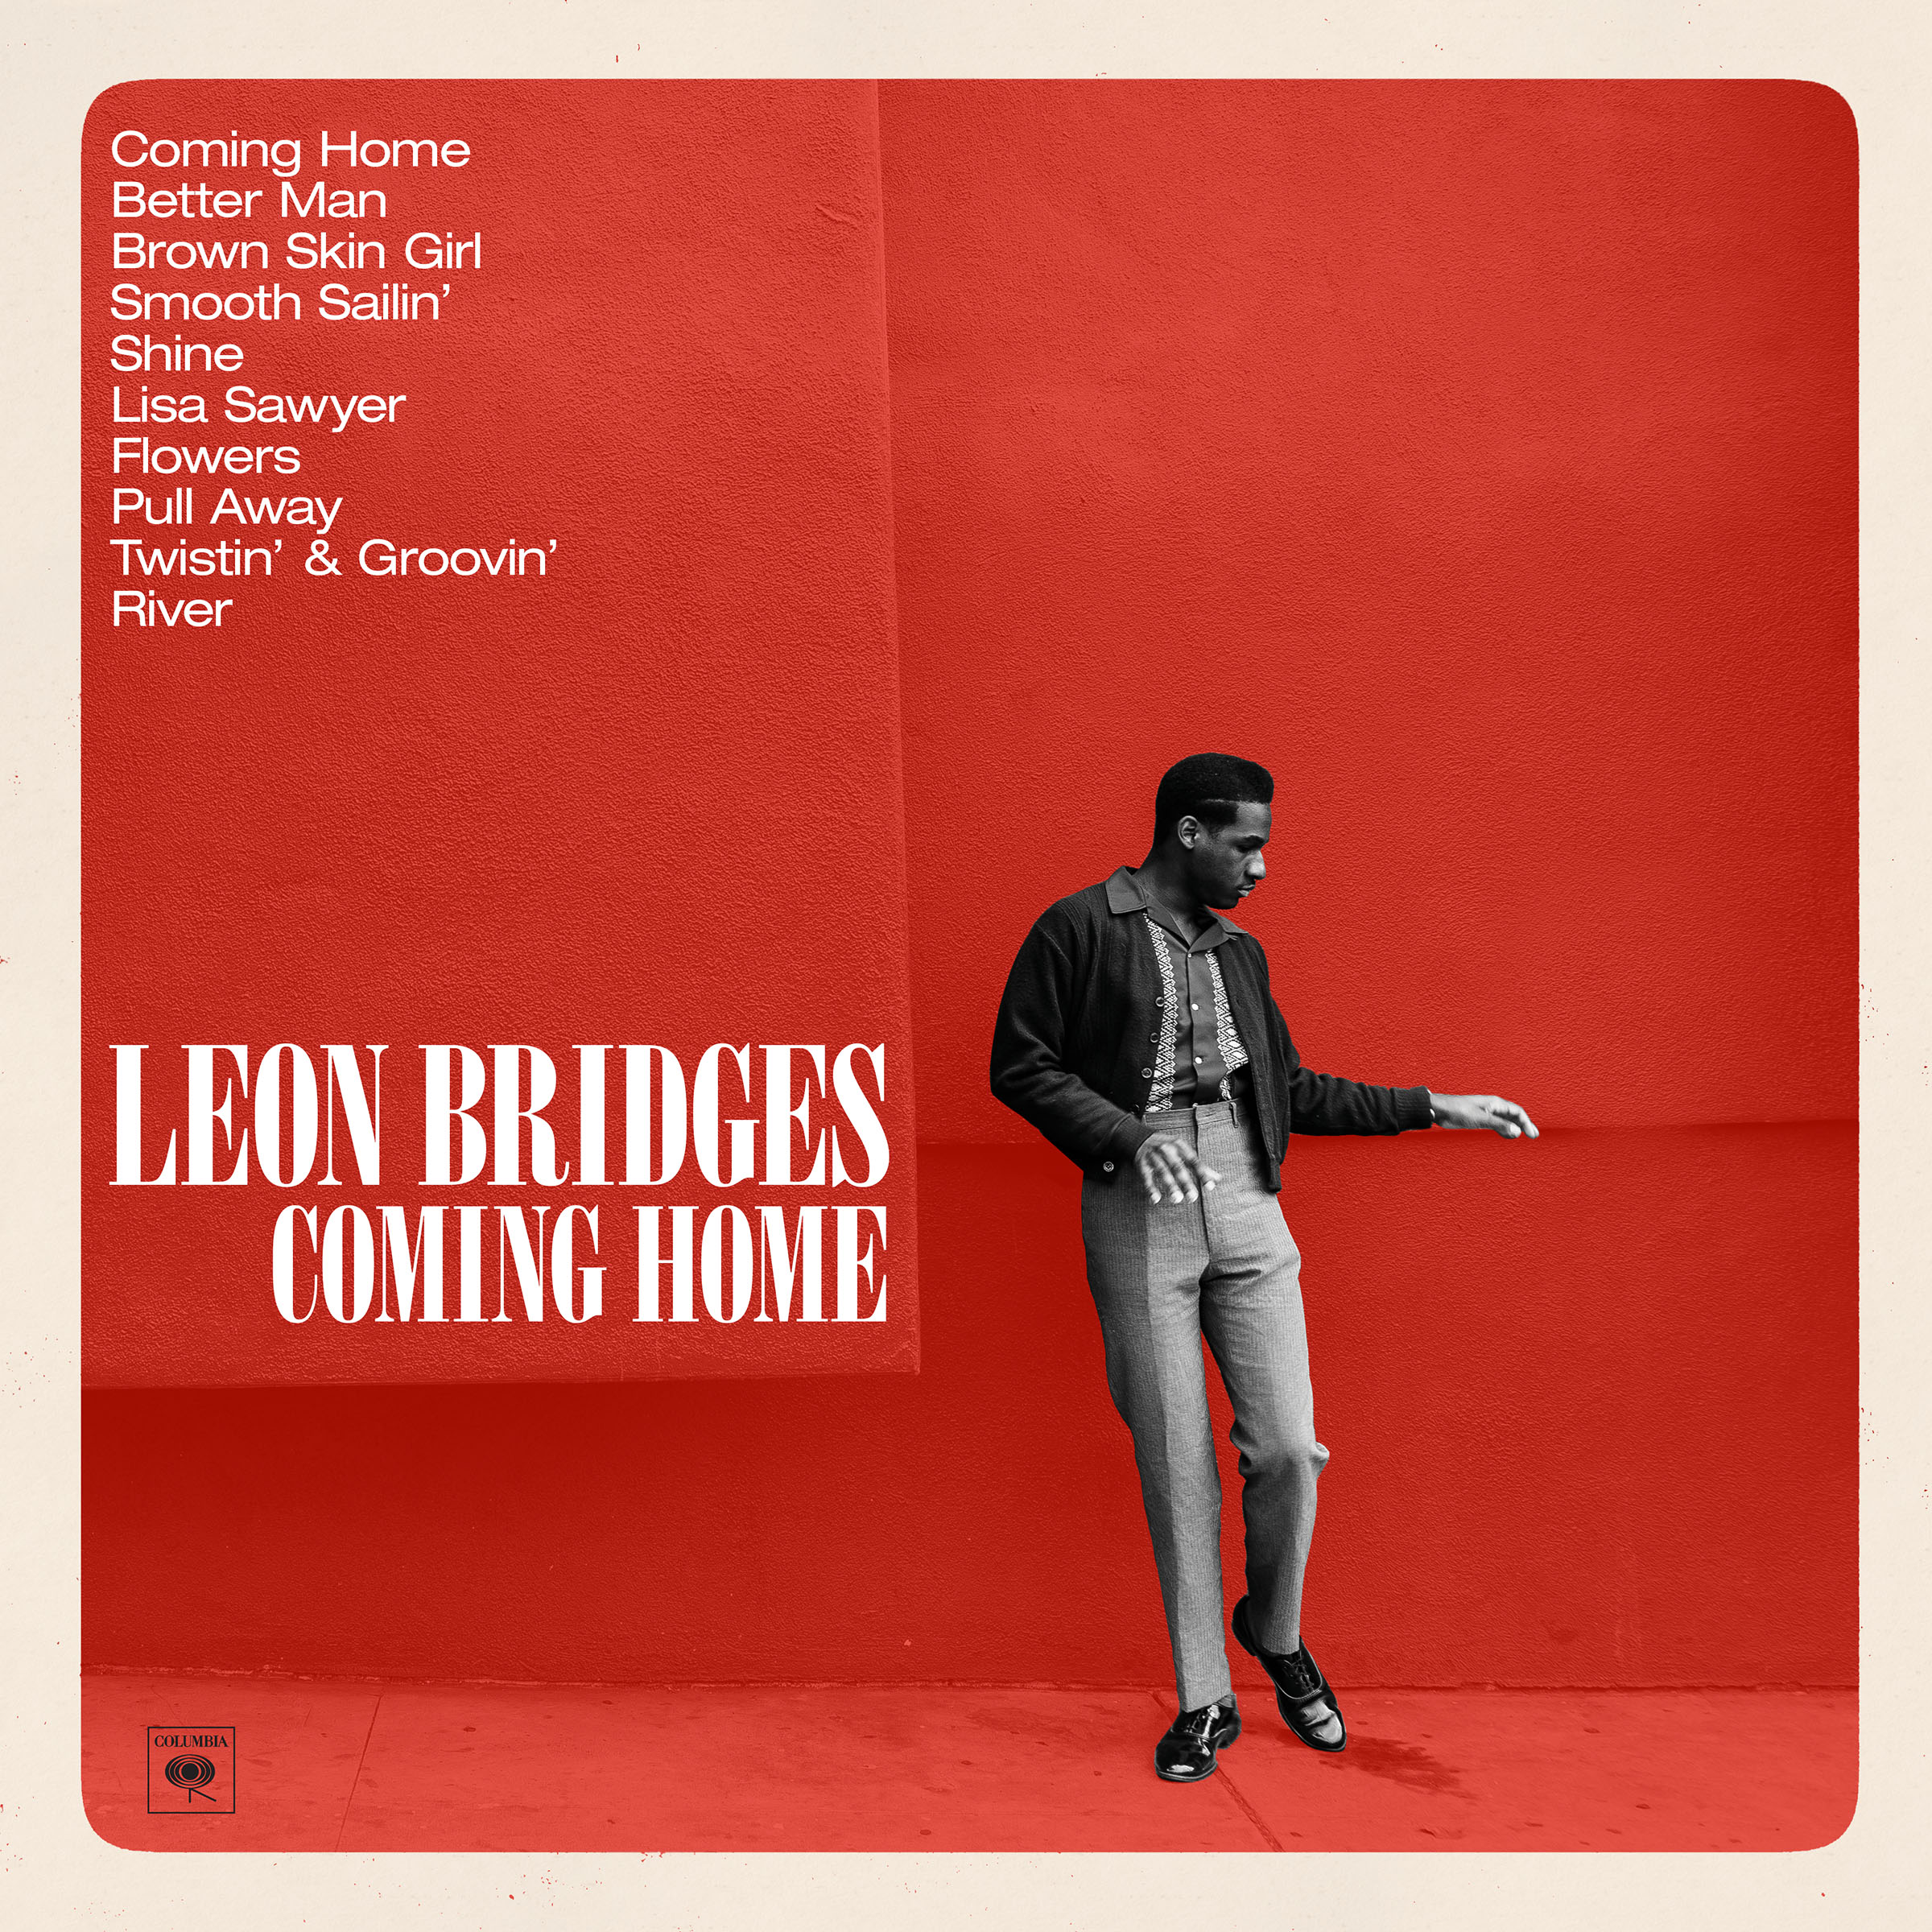 leon_bridges_coming_home-22juin